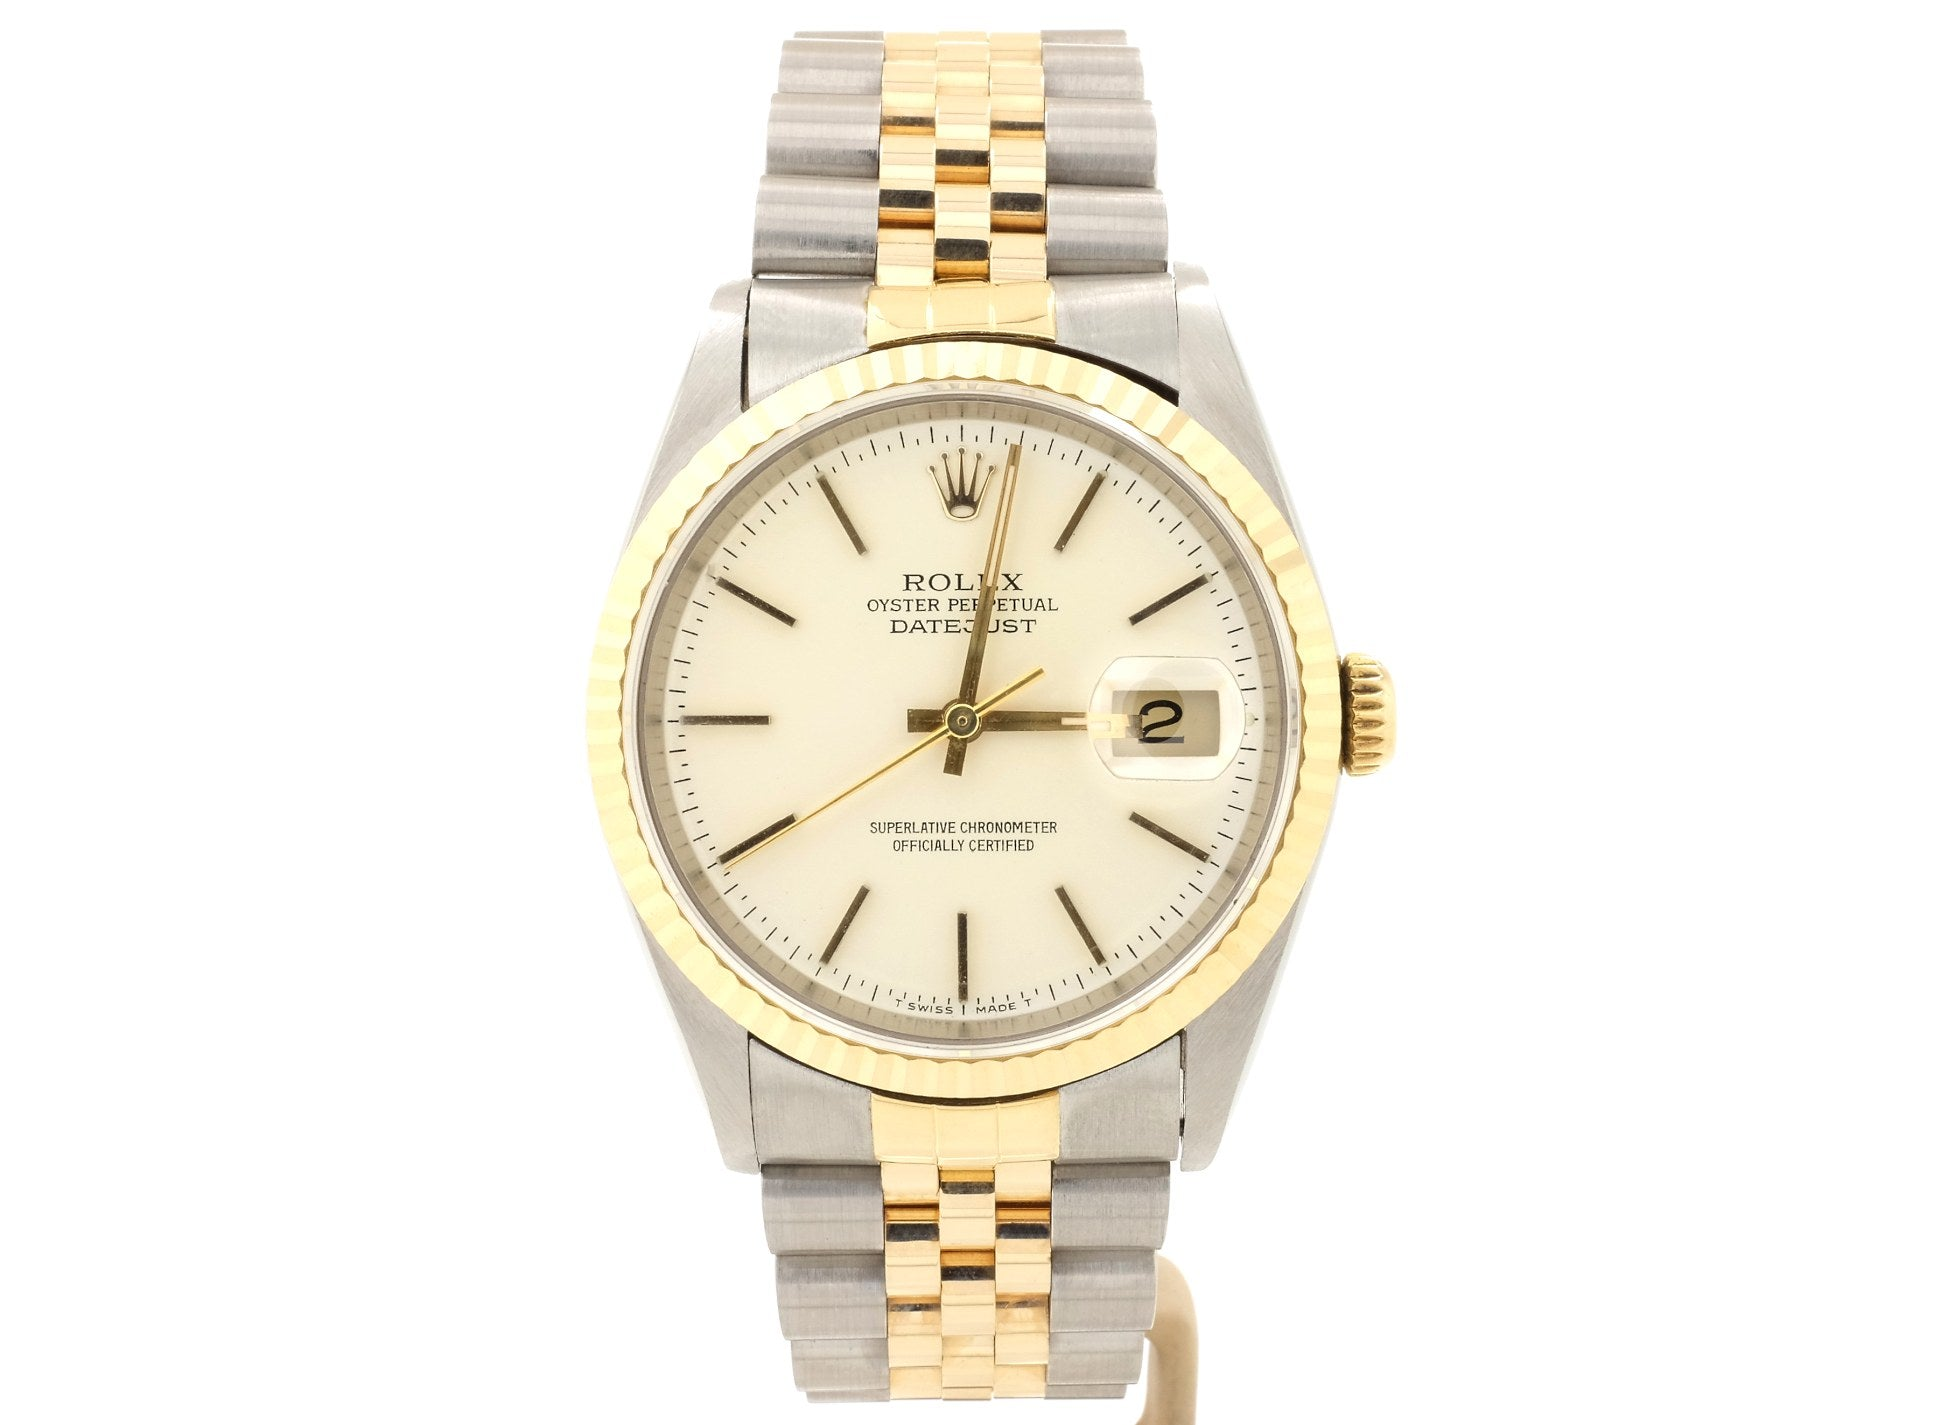 Very Good Condition 36mm Rolex DATEJUST 16233 with Ivory Dial